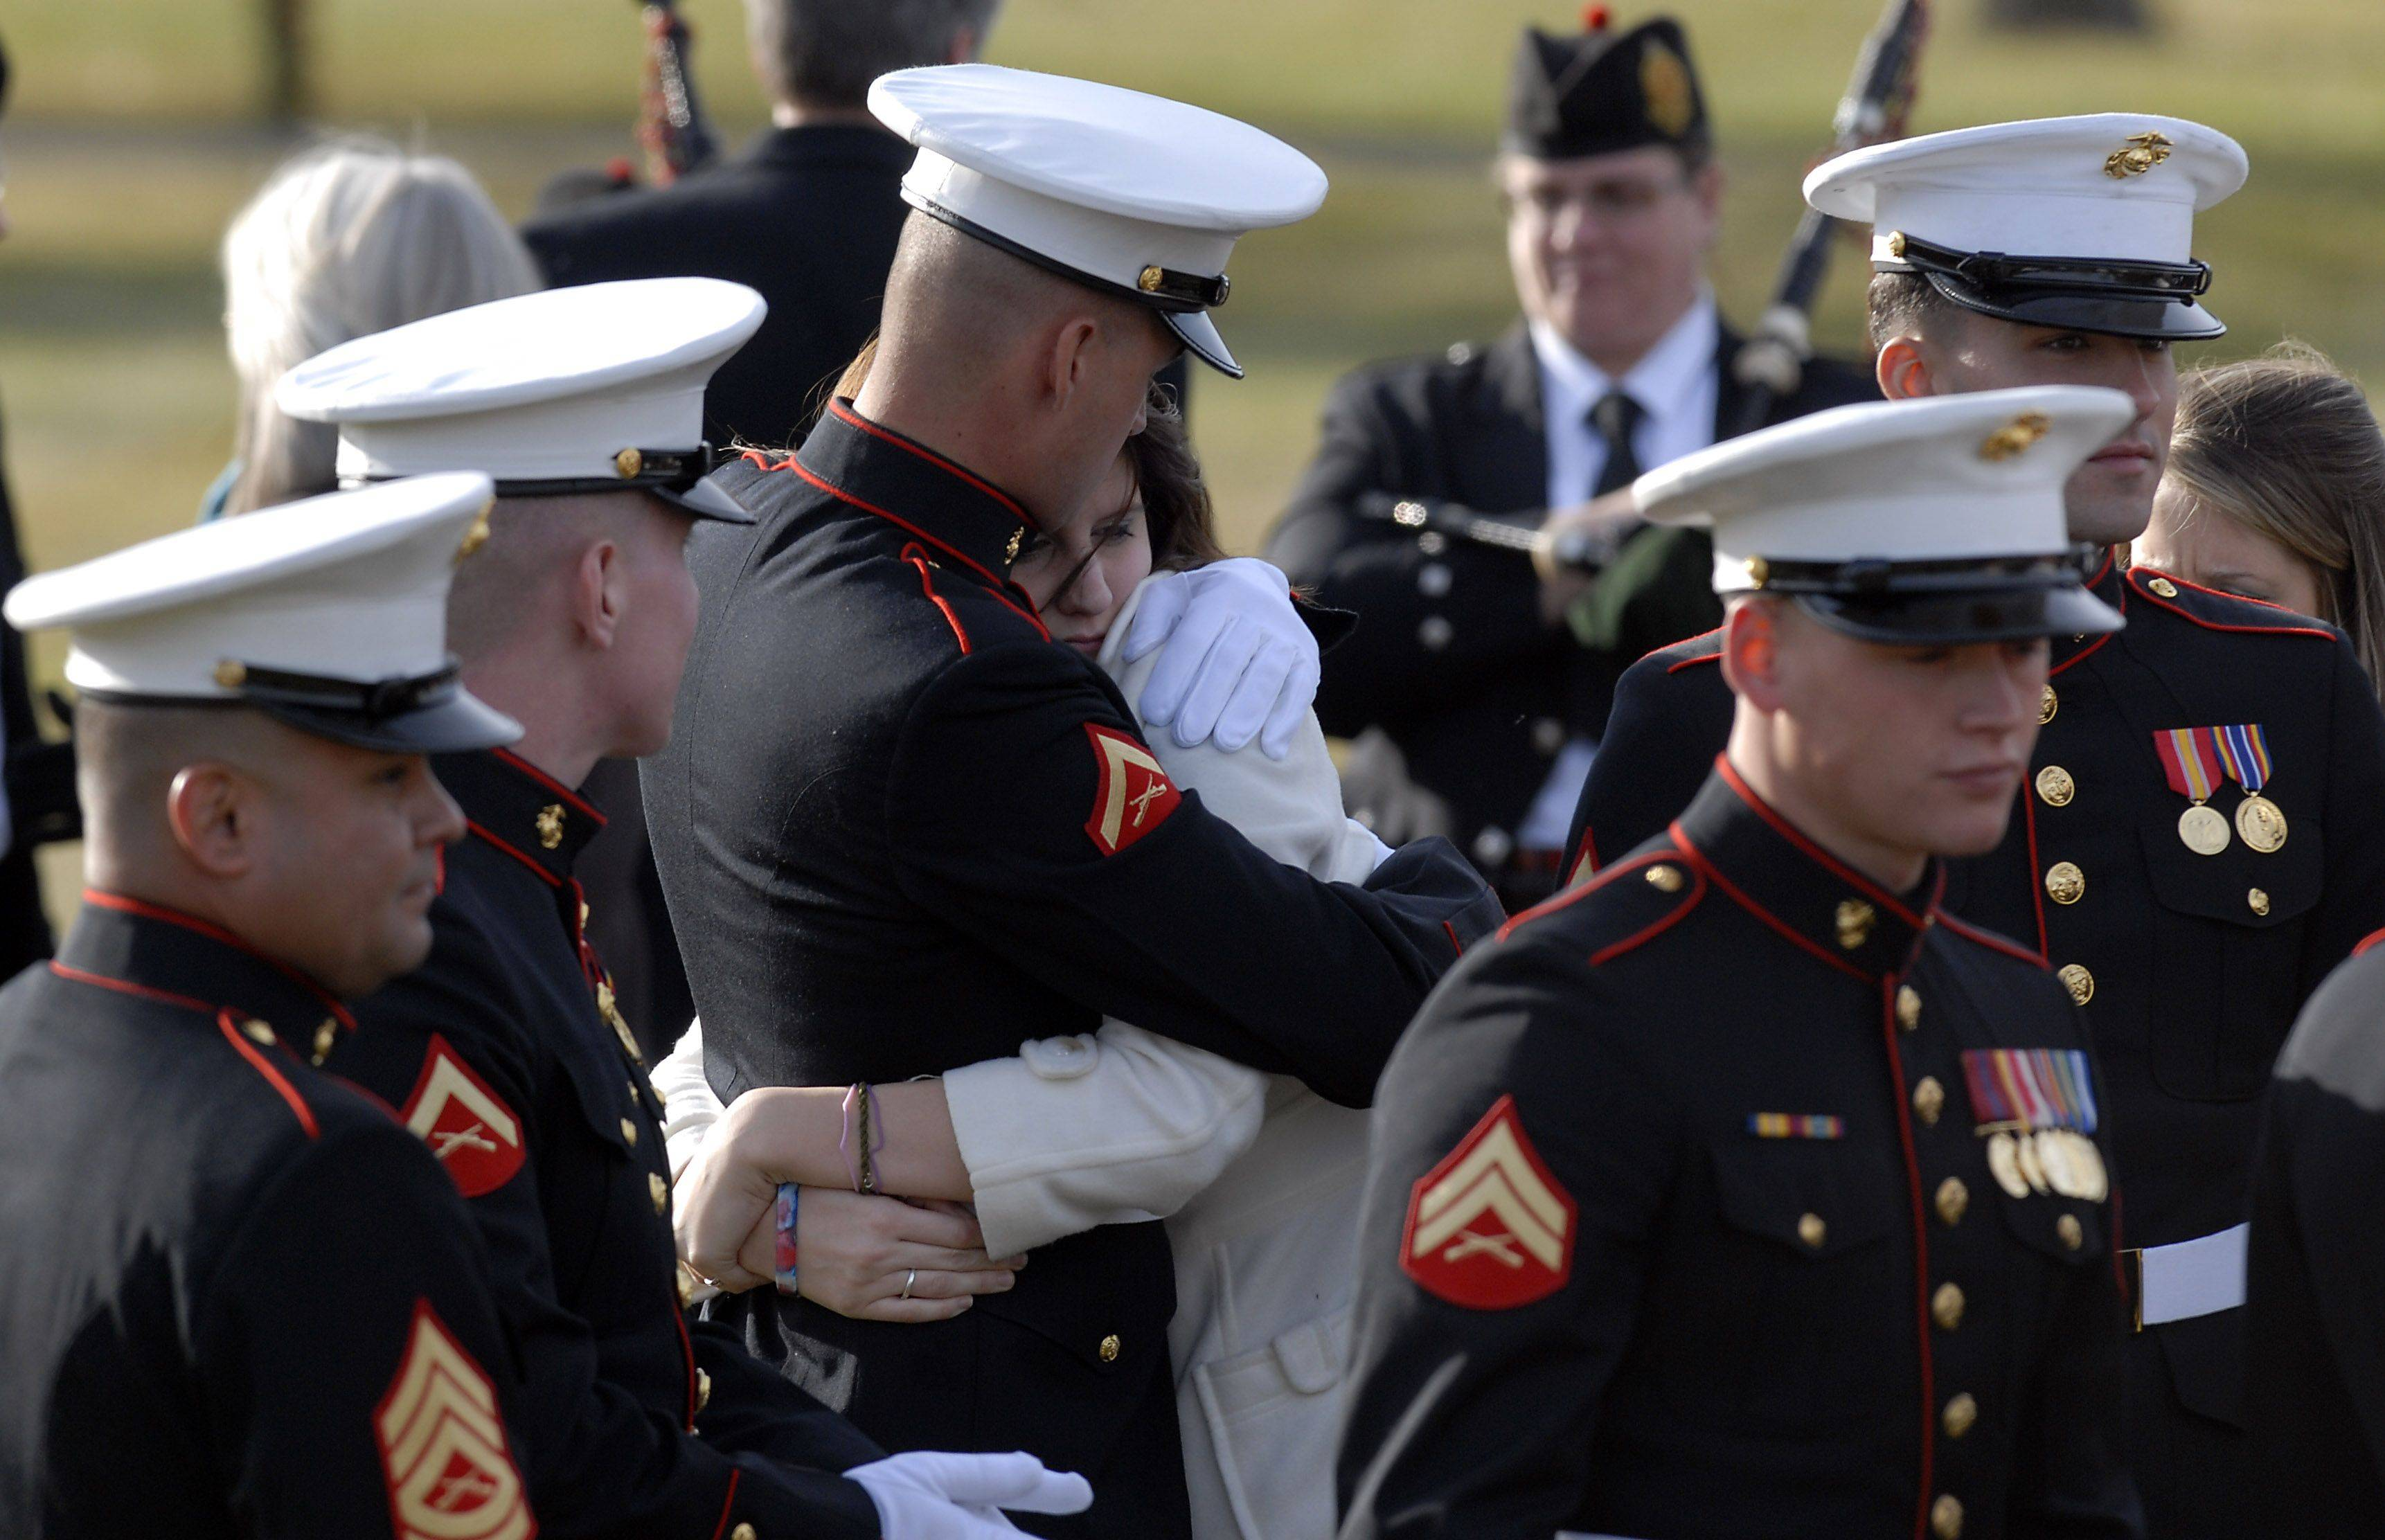 Katie Stack, wife of fallen Marine, Lance Corporal James Stack is hugged by a fellow Marine as she arrives at Memory Gardens in Arlington Heights on Saturday.